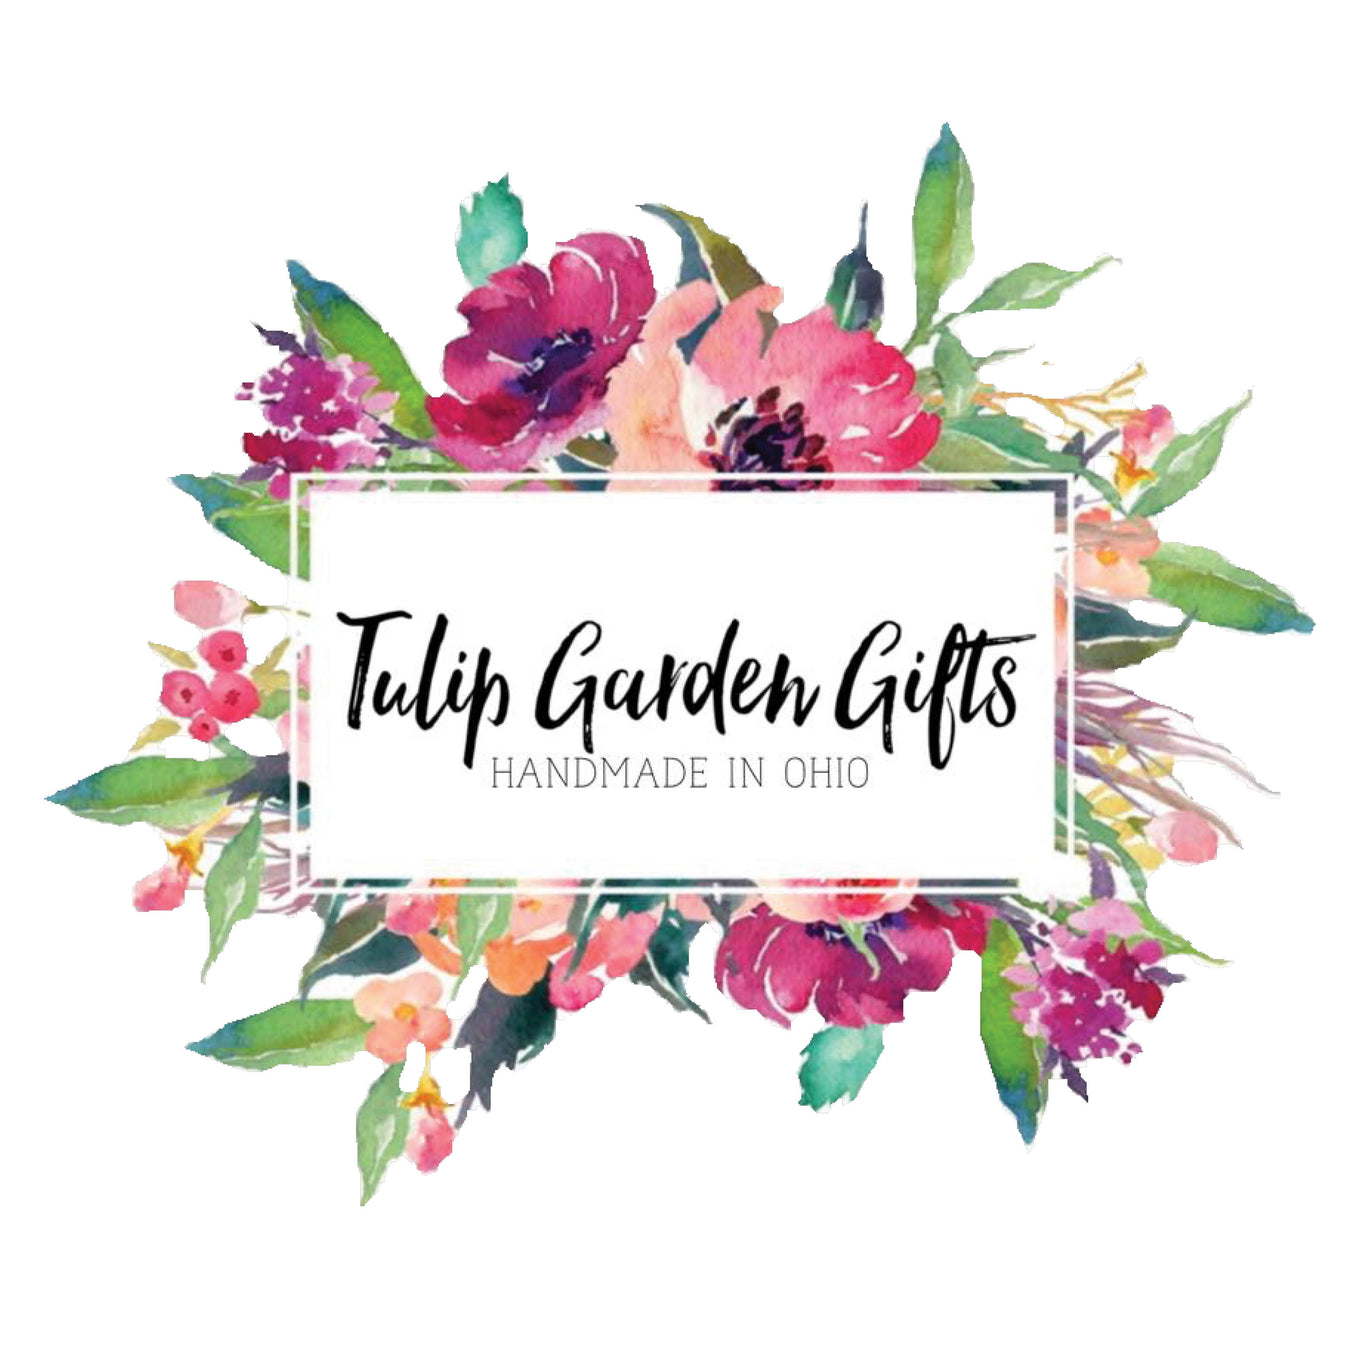 Support Tulip Garden Gifts